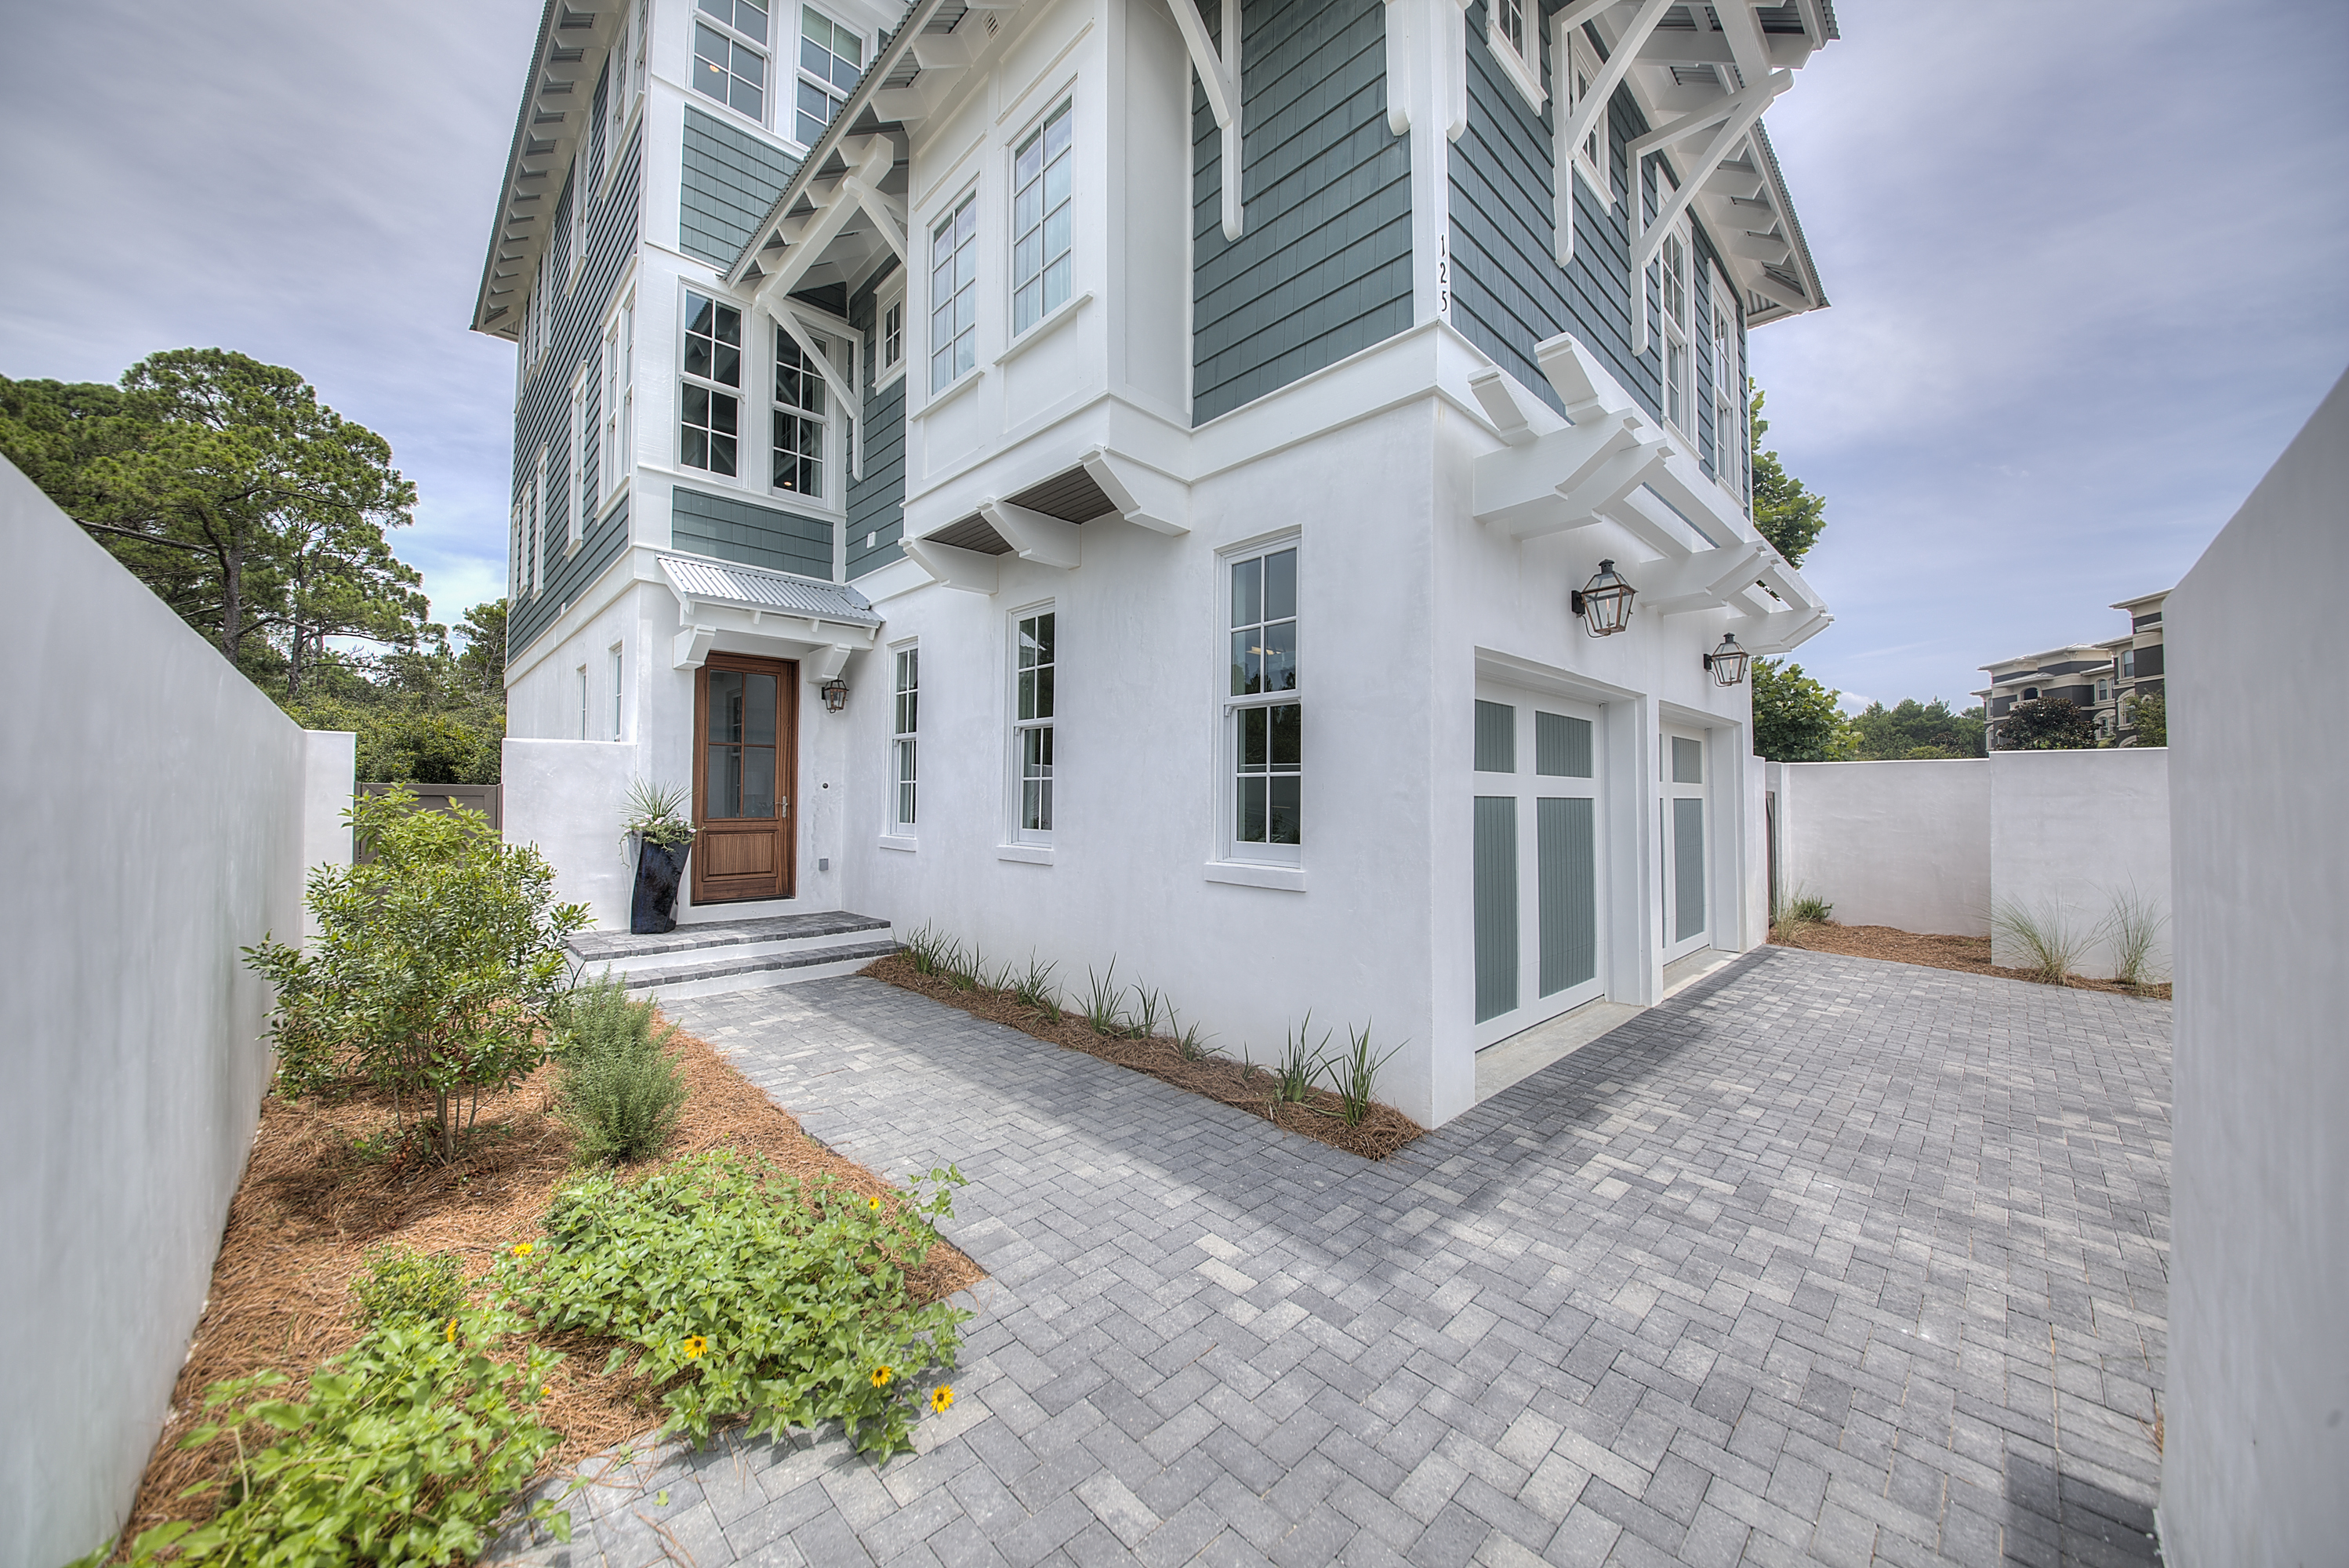 Sea Nest Is A Gated Mediterranean Influenced Community On 30a That Home To 125